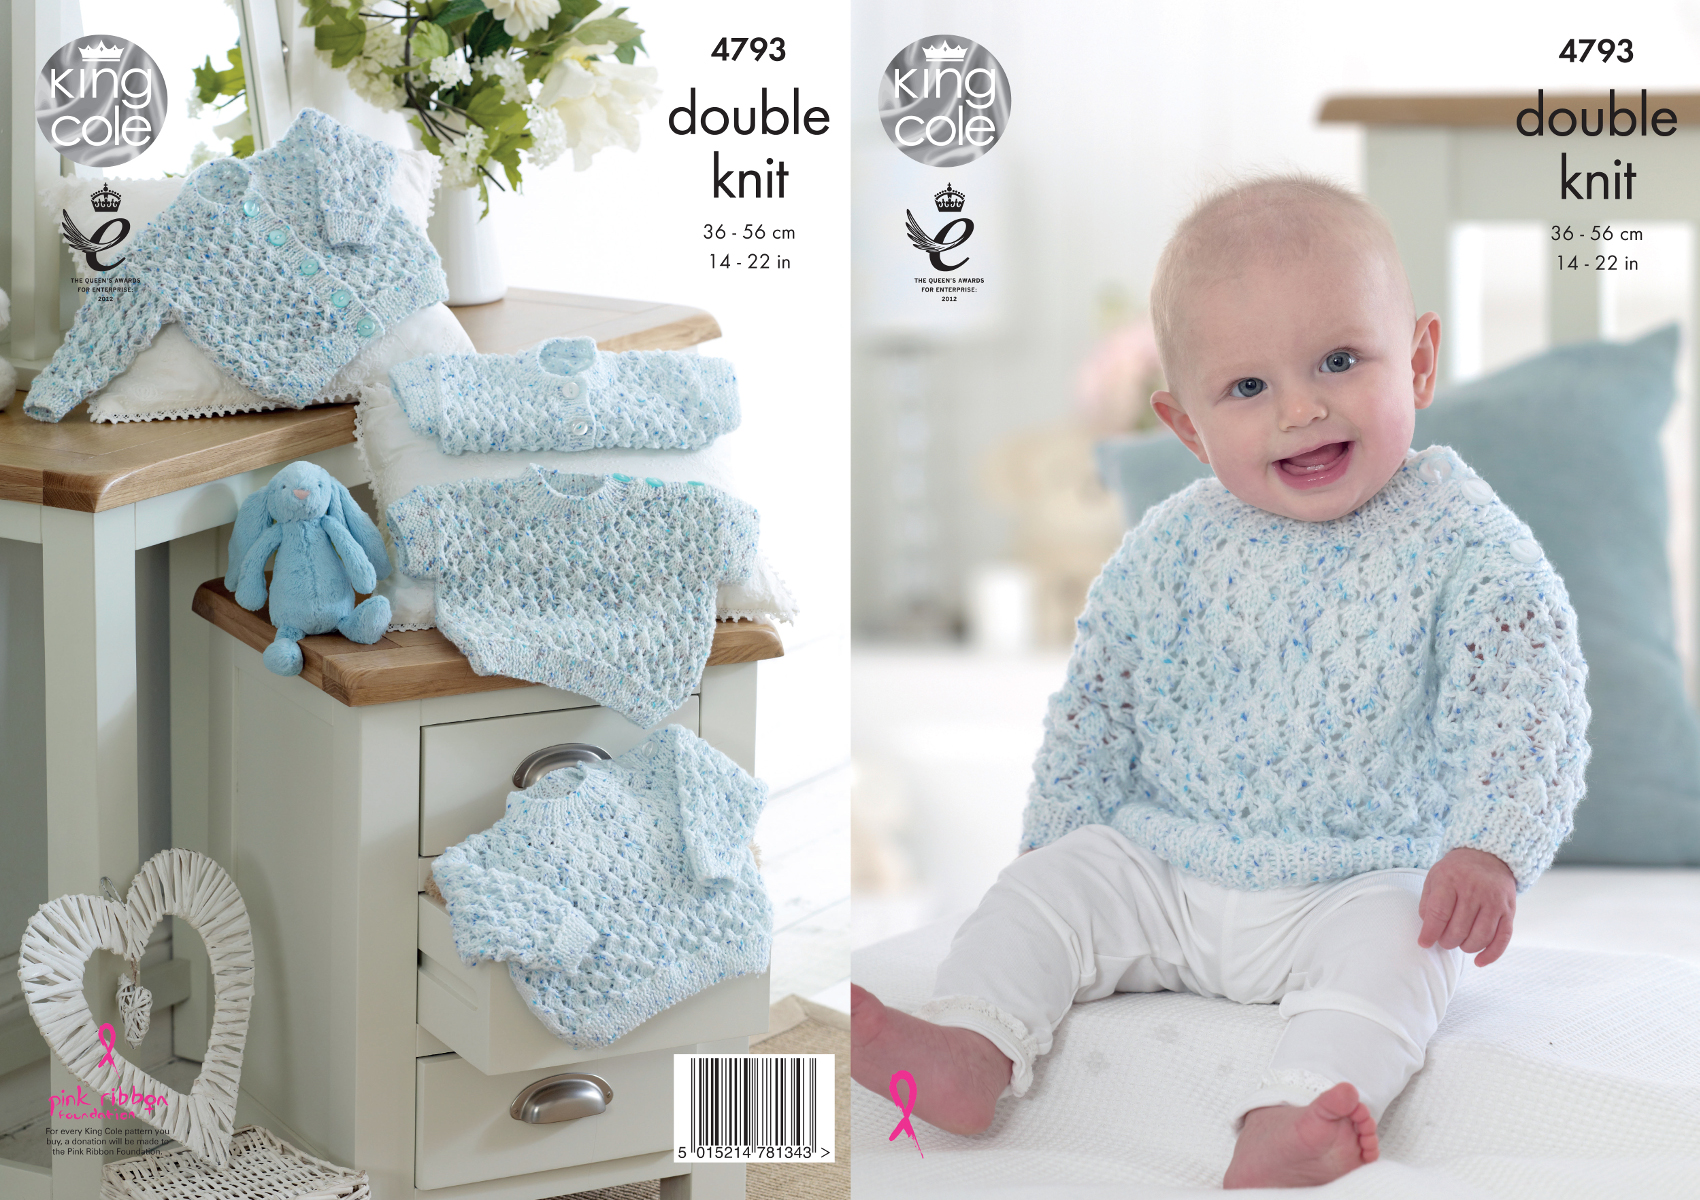 King Cole Baby Double Knitting Pattern Short or Long Sleeve Jumper ...